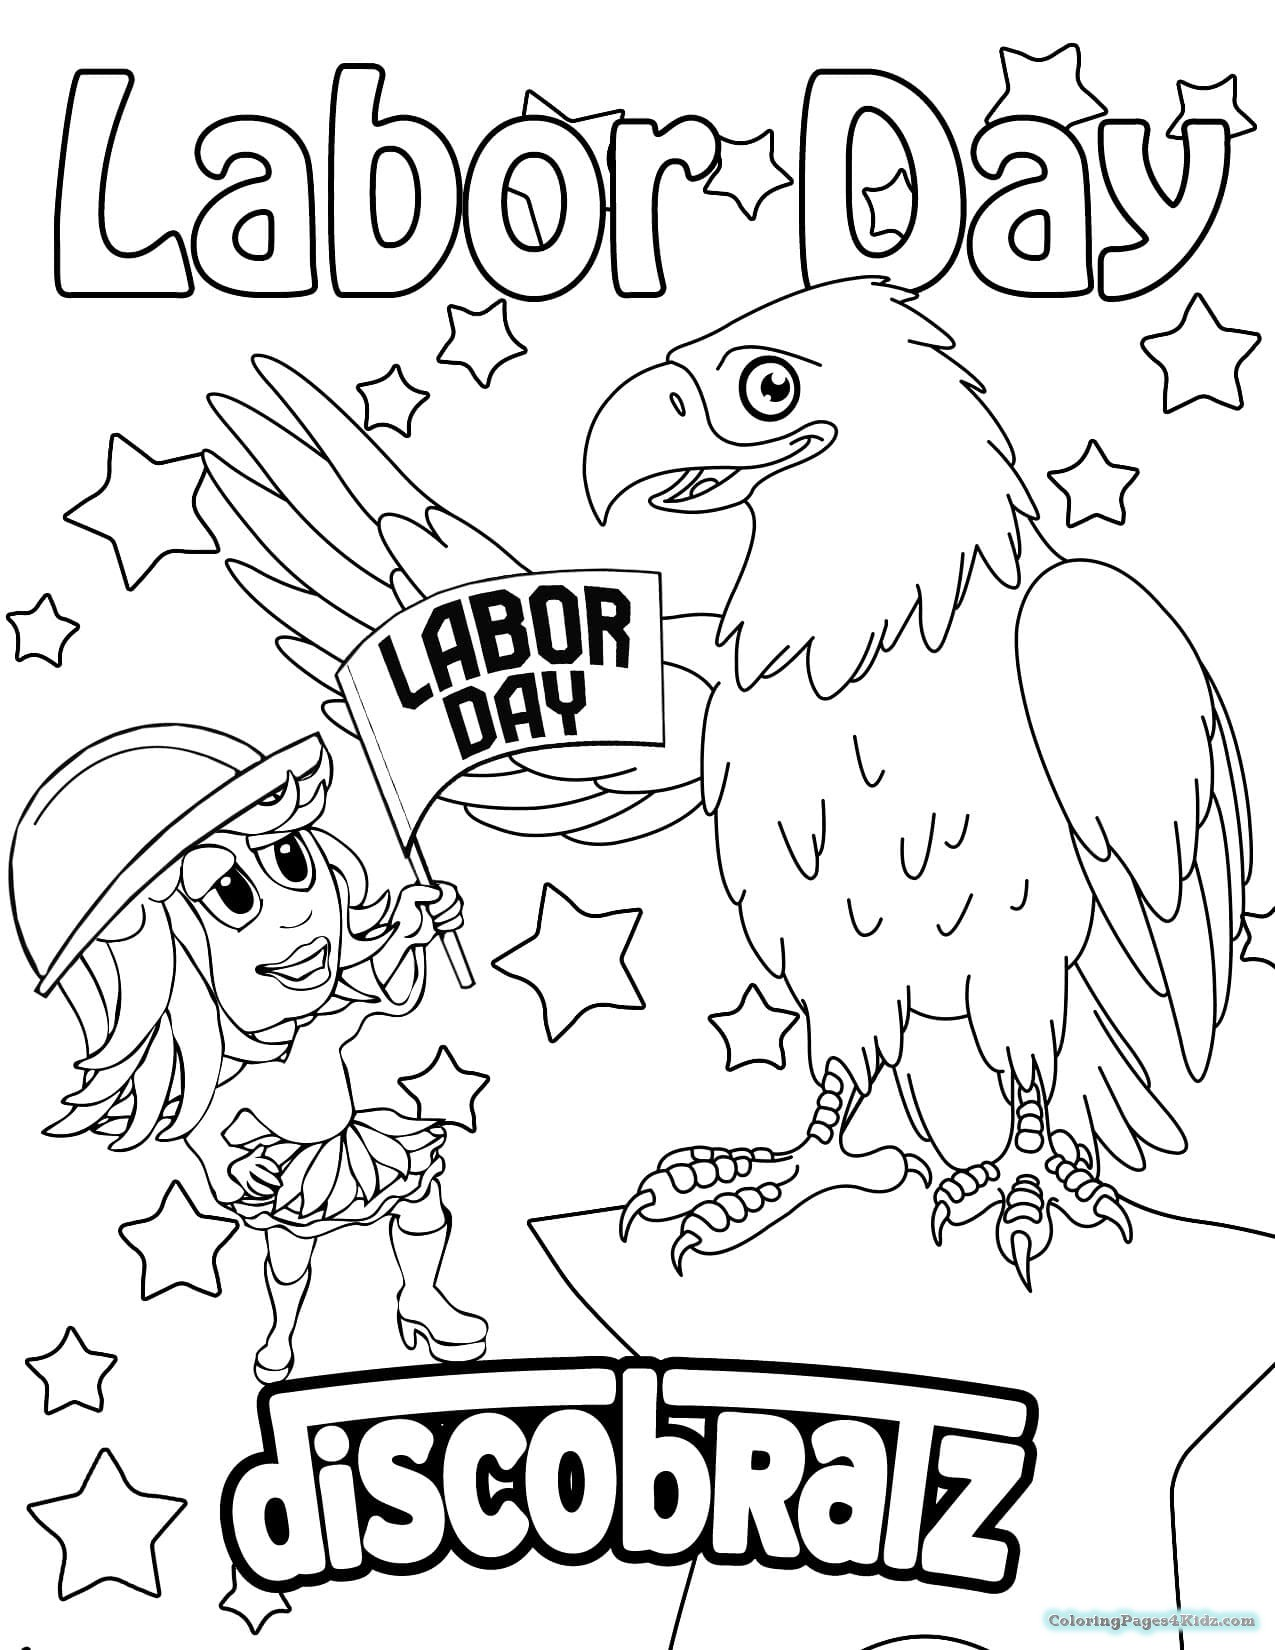 labor day coloring pages free printable labor day coloring pages kidsuki labor day printable pages free coloring